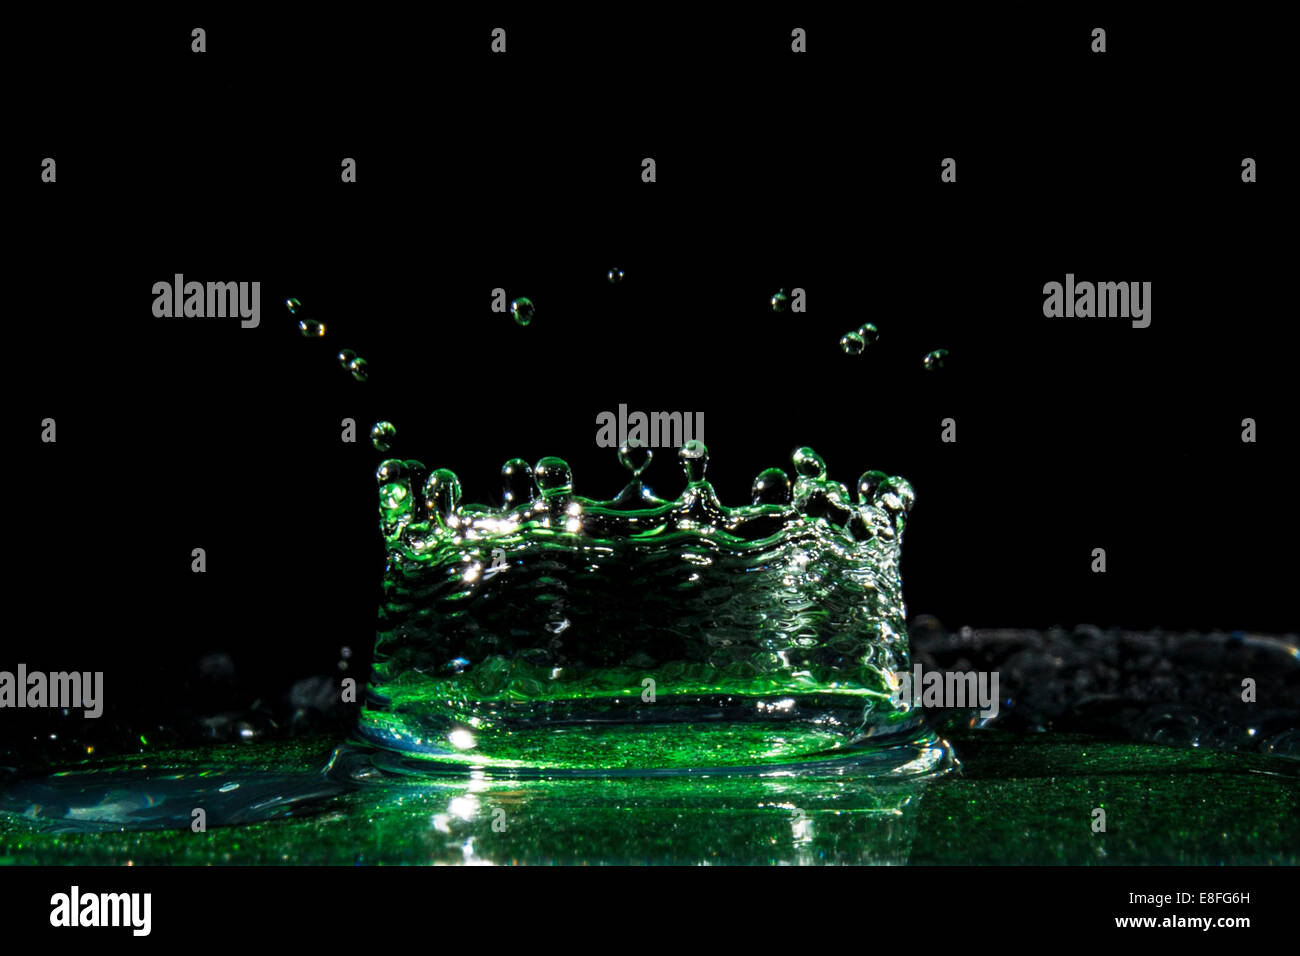 Water Crown splashing in water - Stock Image